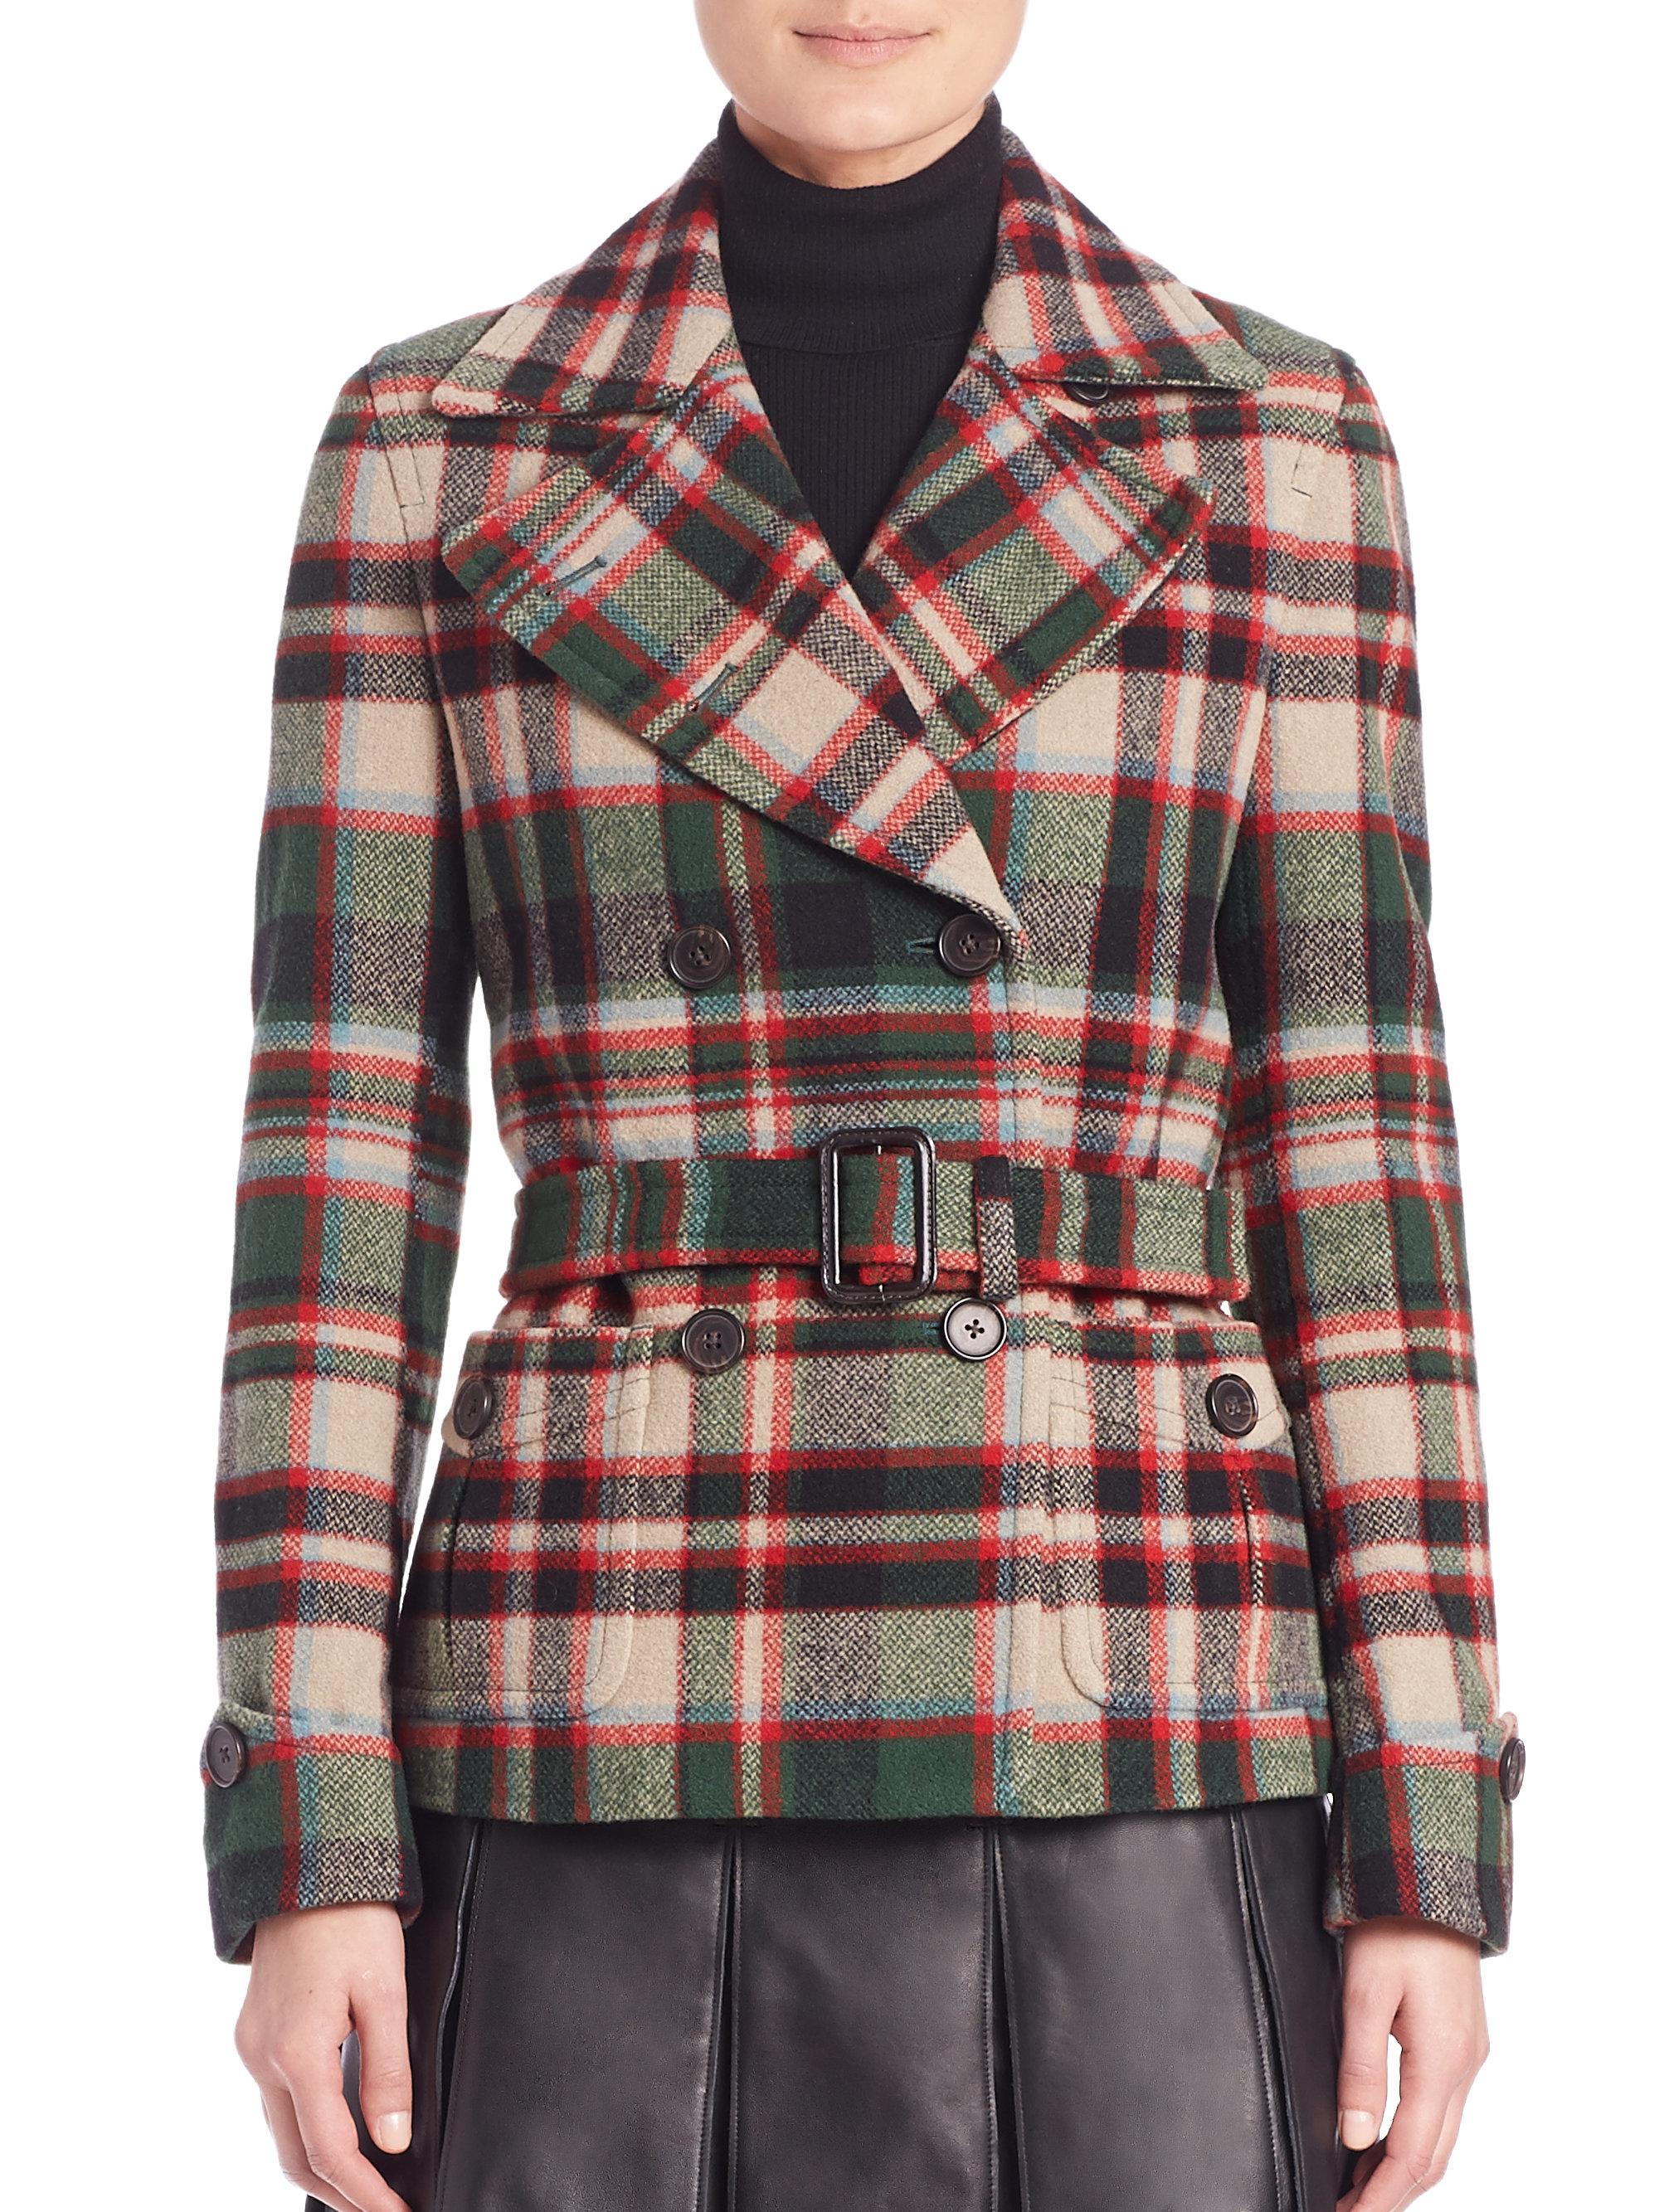 Ralph lauren red and green coat